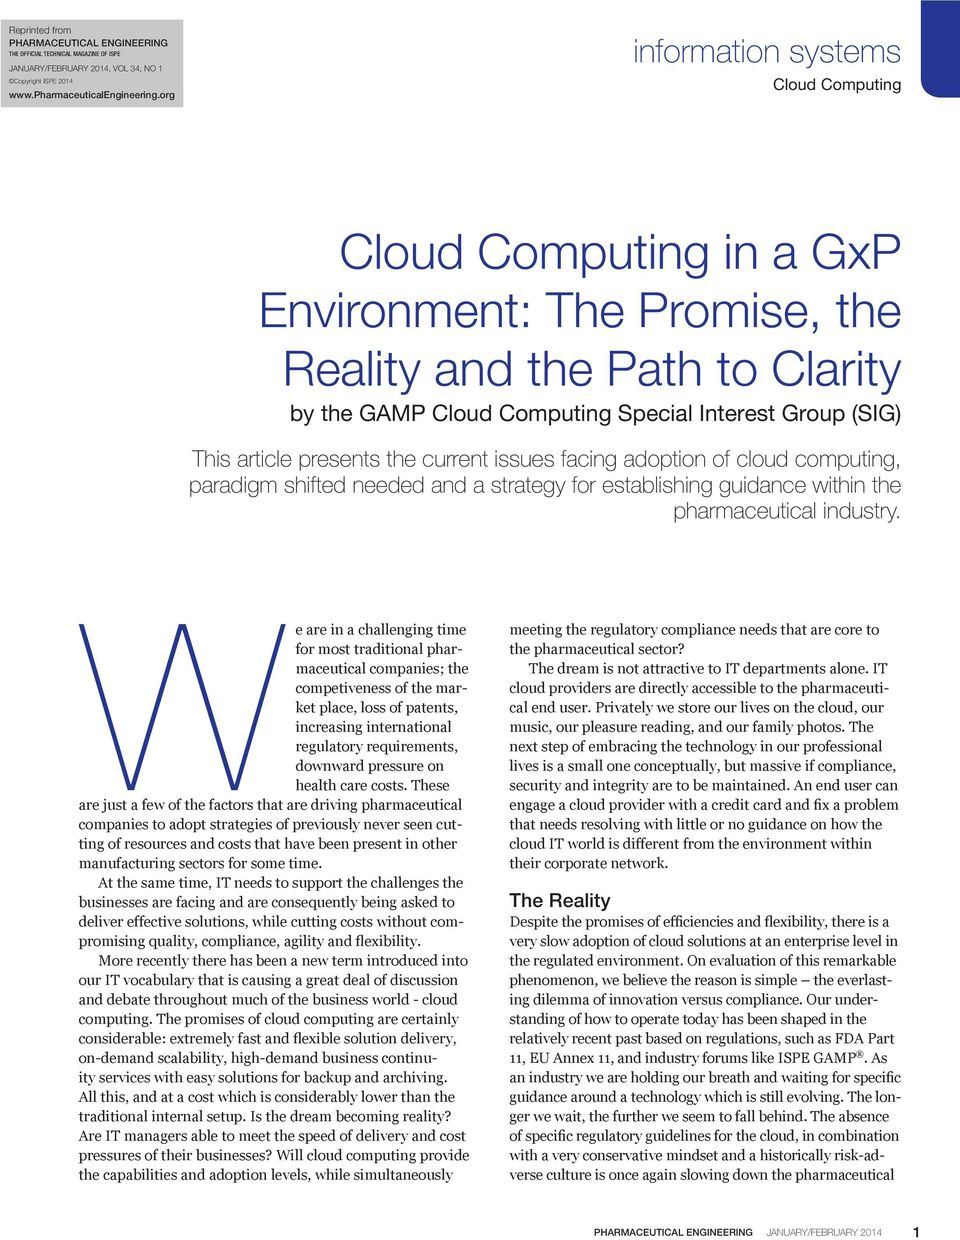 cloud computing, paradigm shifted needed and a strategy for establishing guidance within the pharmaceutical industry.